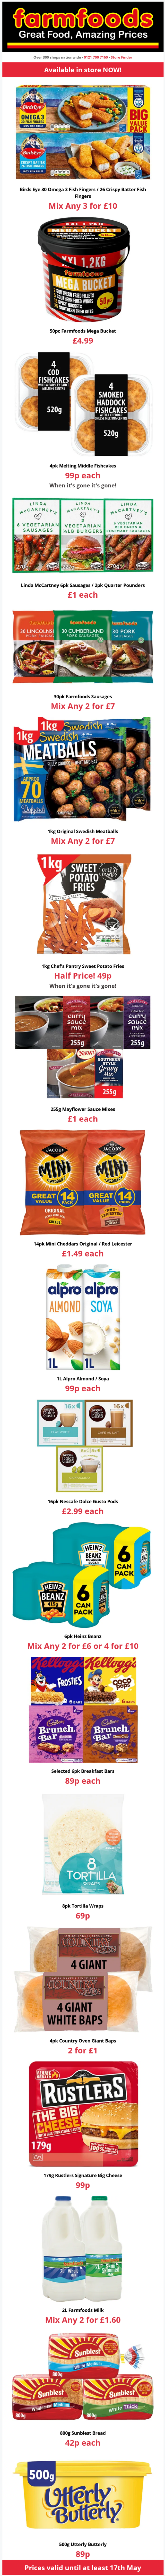 Farmfoods Offers Preview until at least 17th May 2021 2021